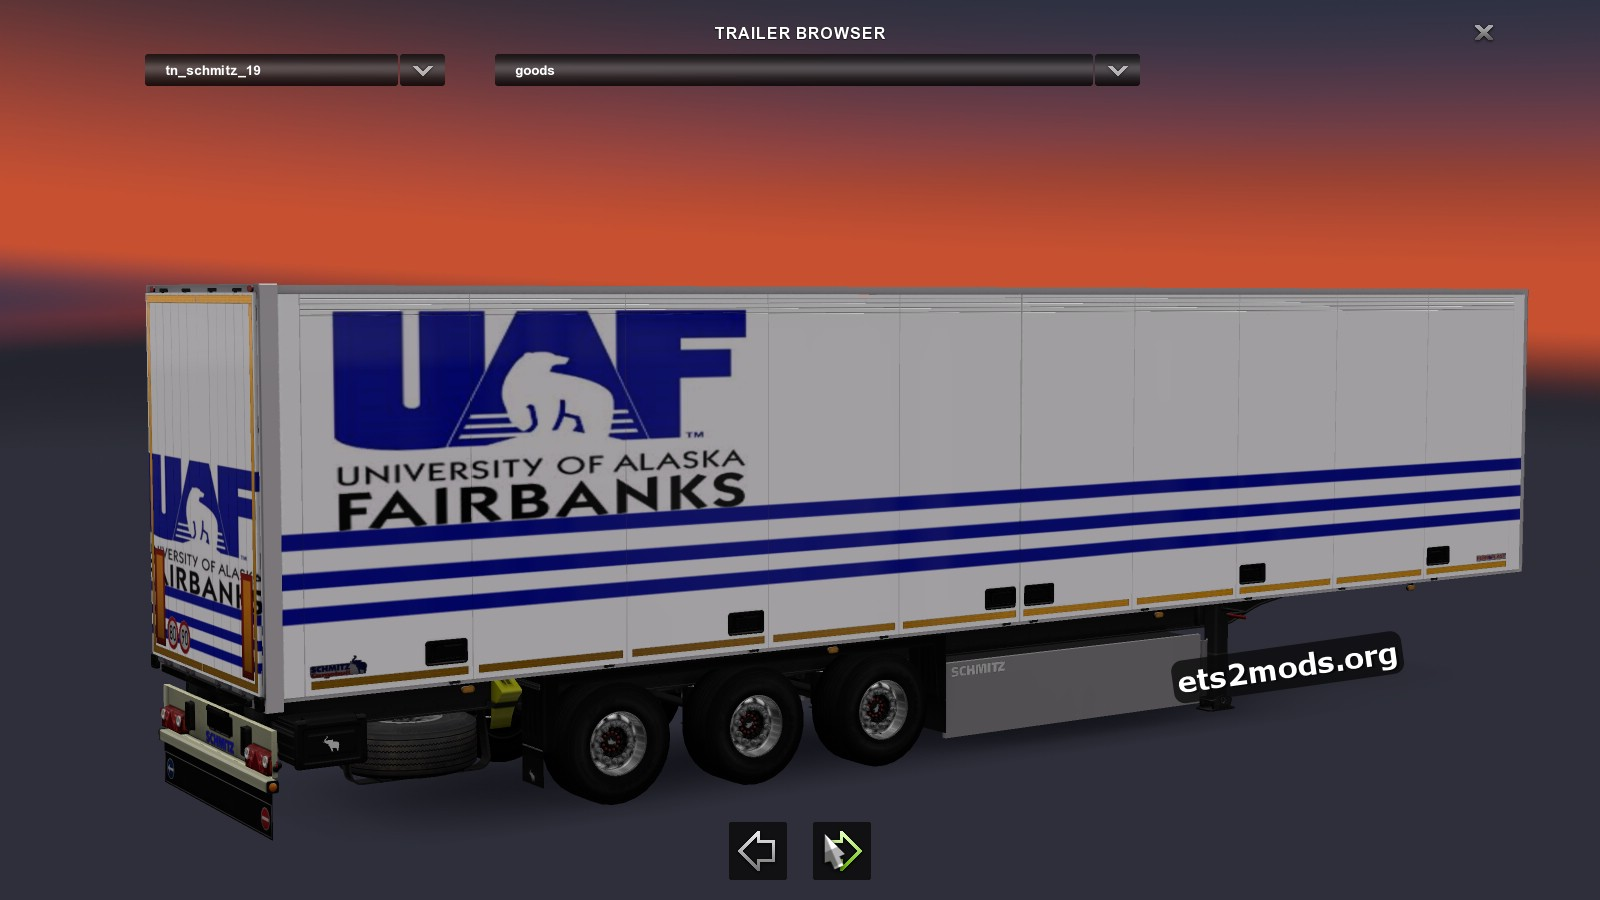 4 Schmitz Trailers by rommi tz & c sharp